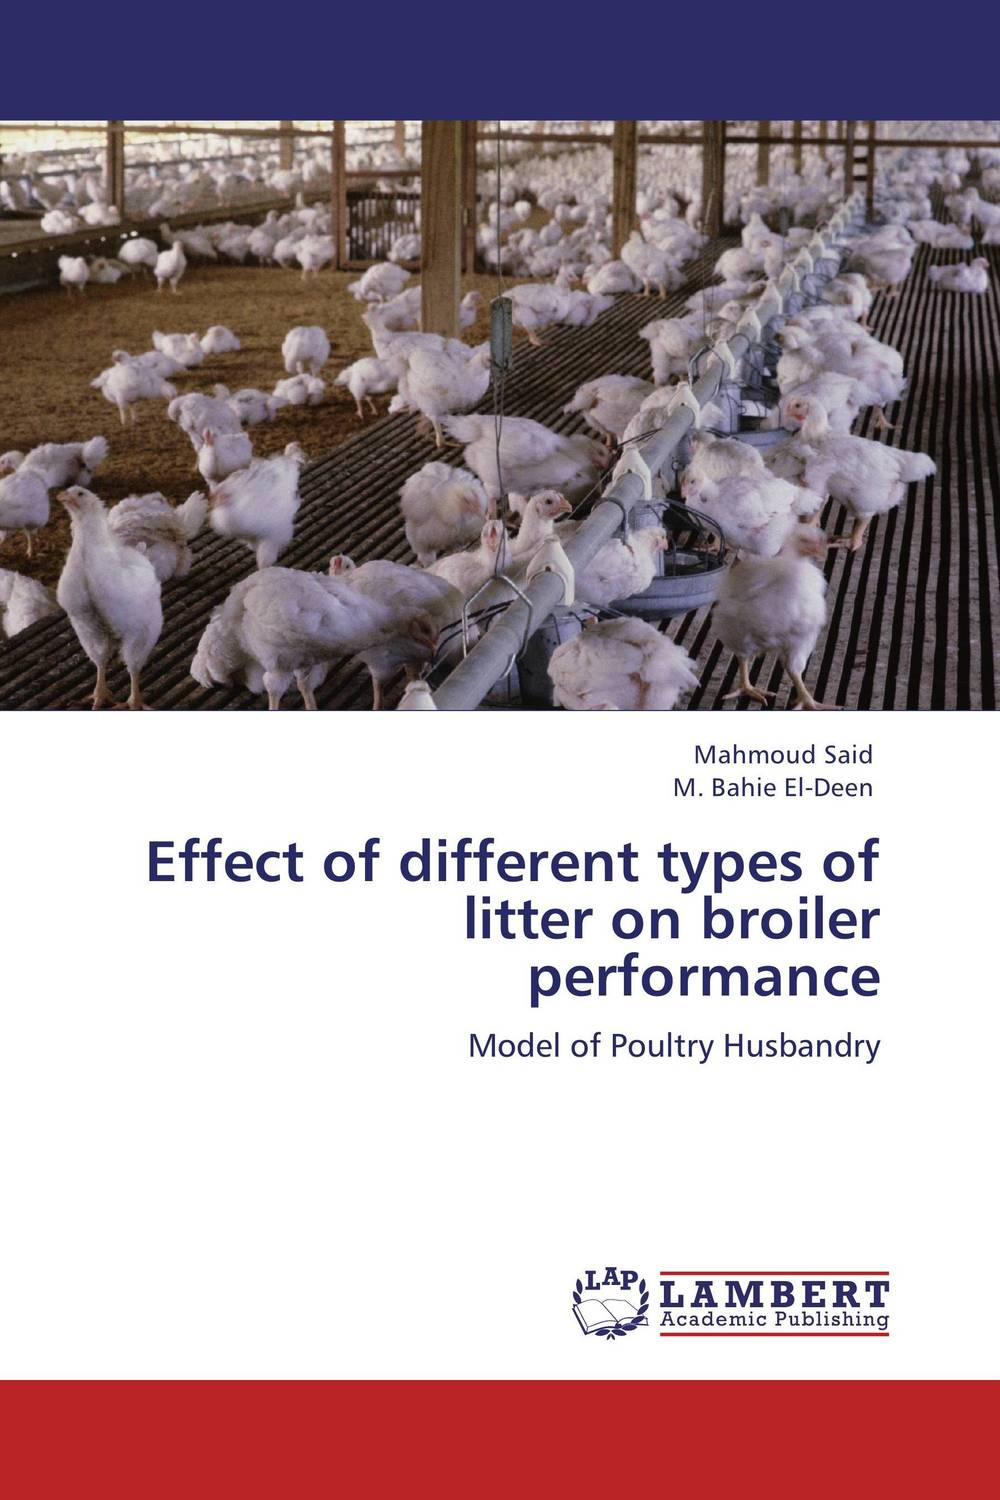 купить Effect of different types of litter on broiler performance недорого